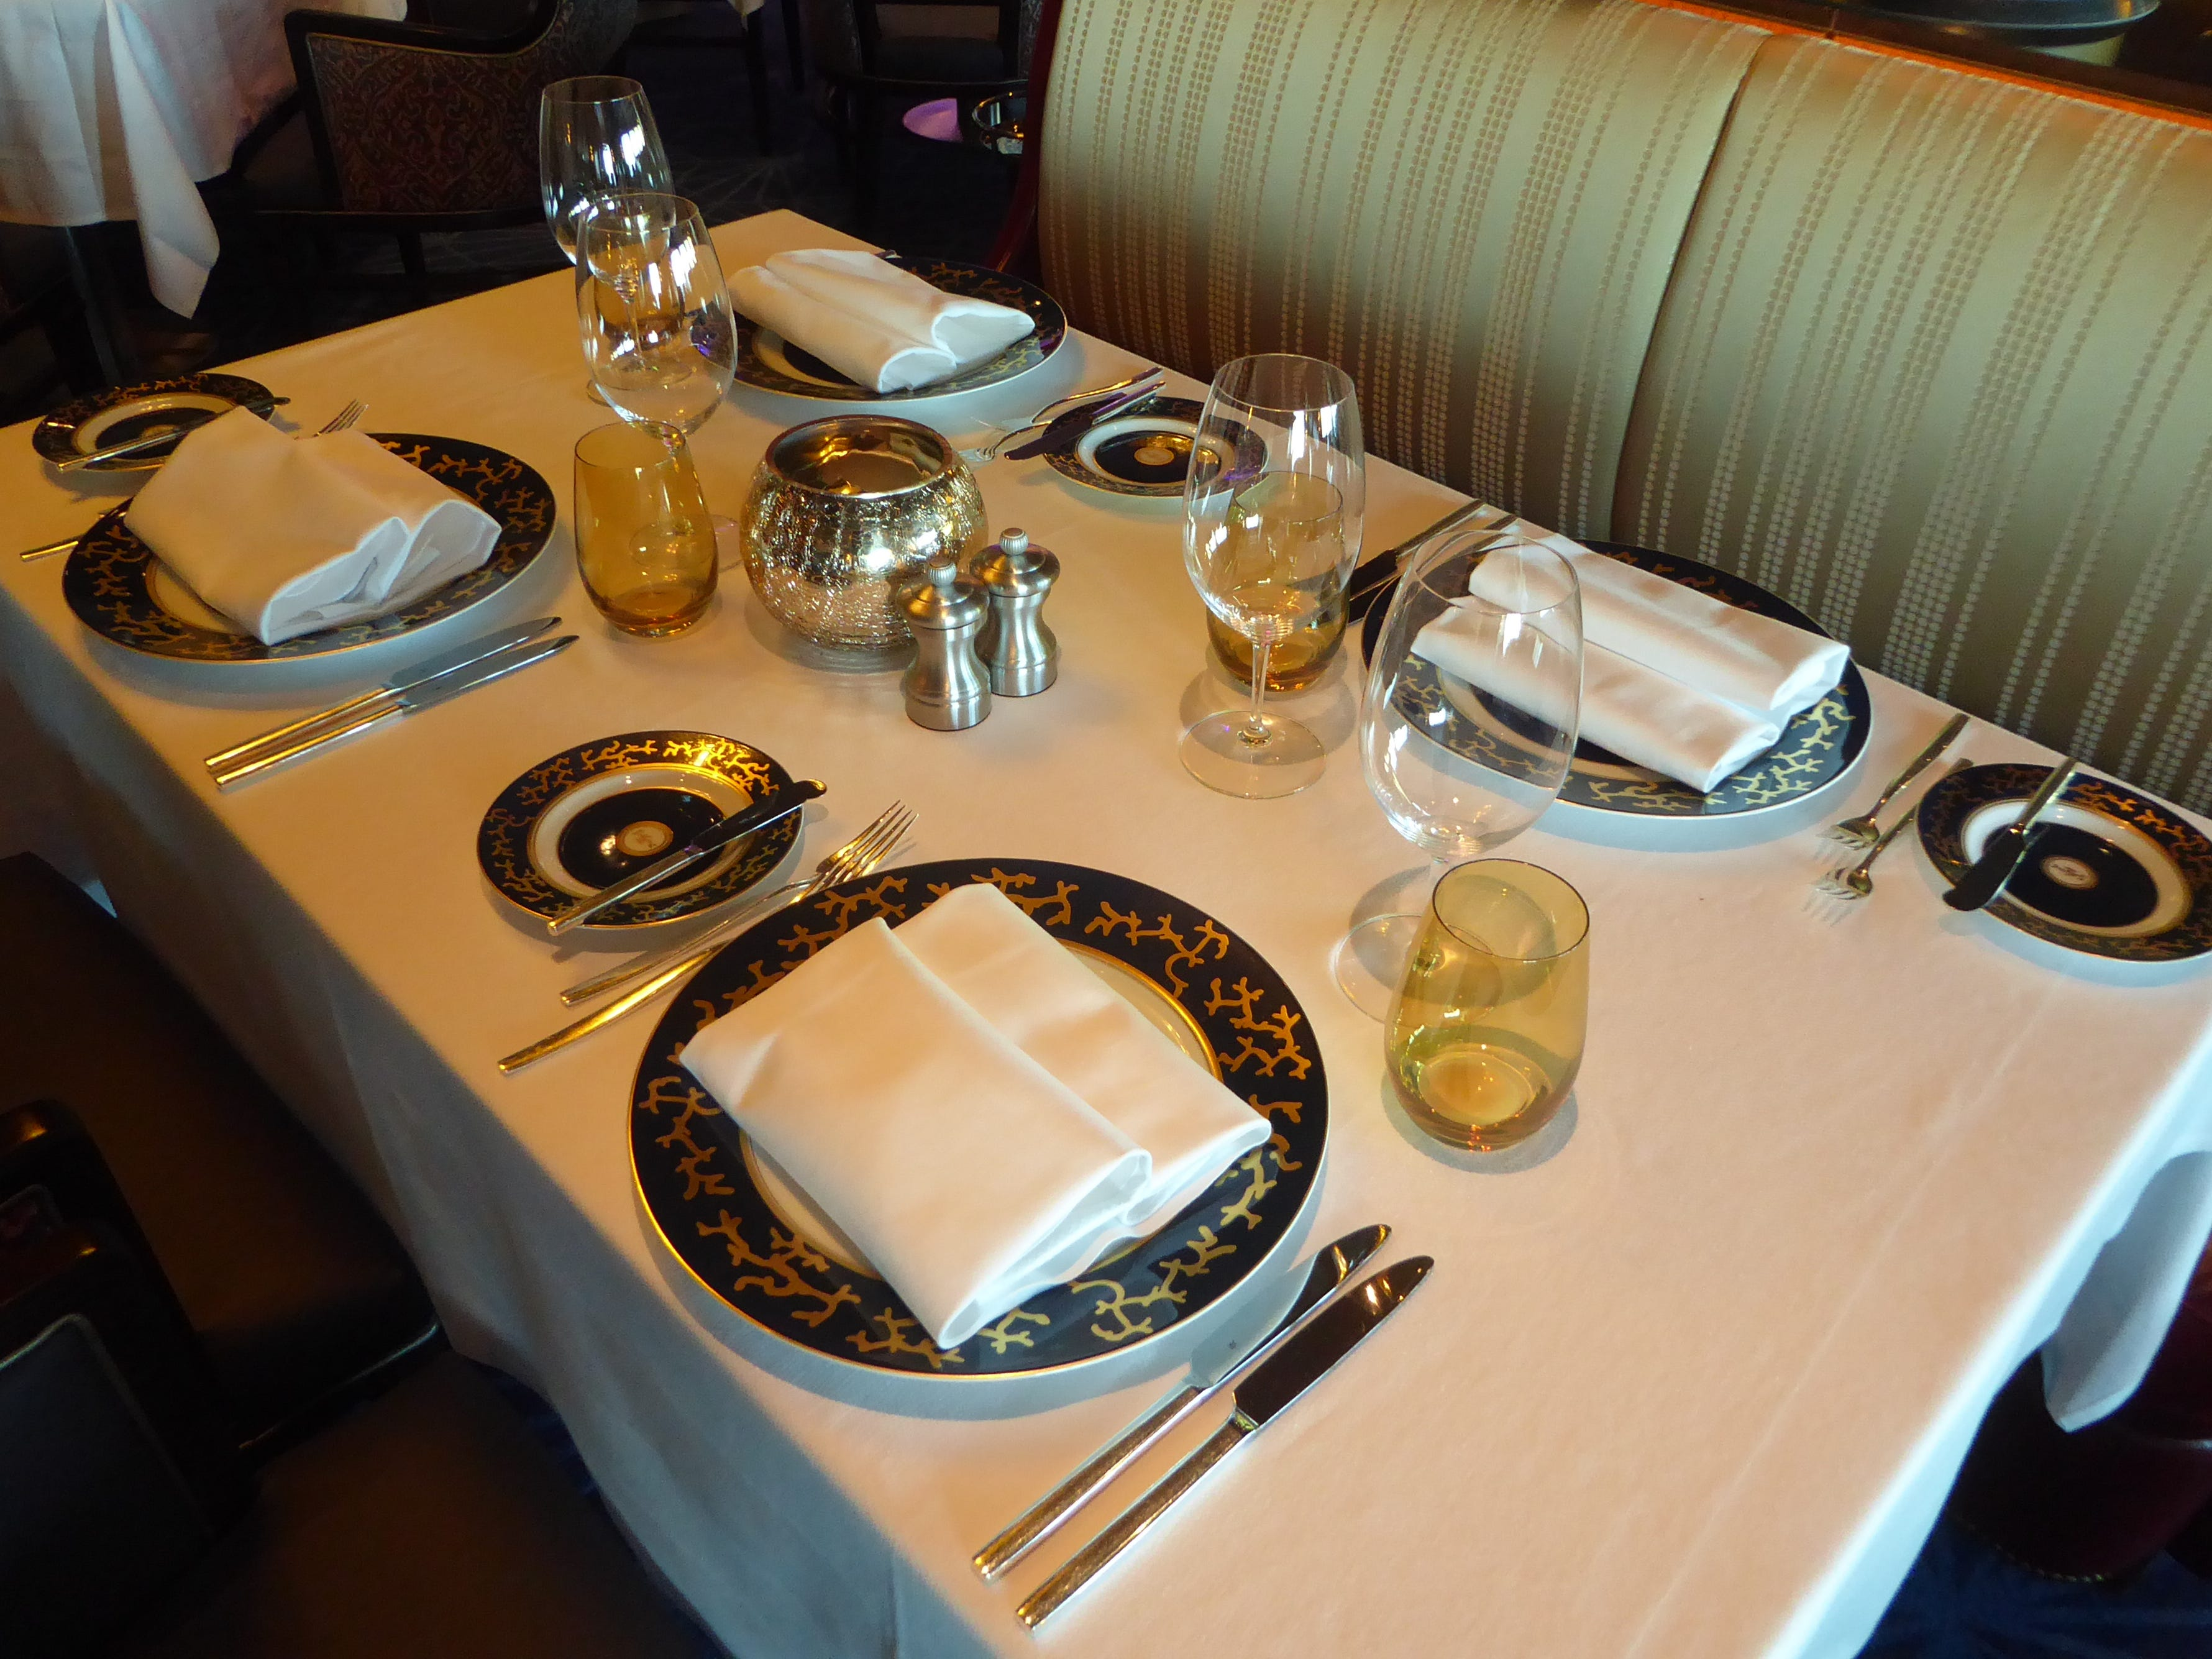 Table settings in the Pinnacle Grill feature Raynaud by Limoges china.